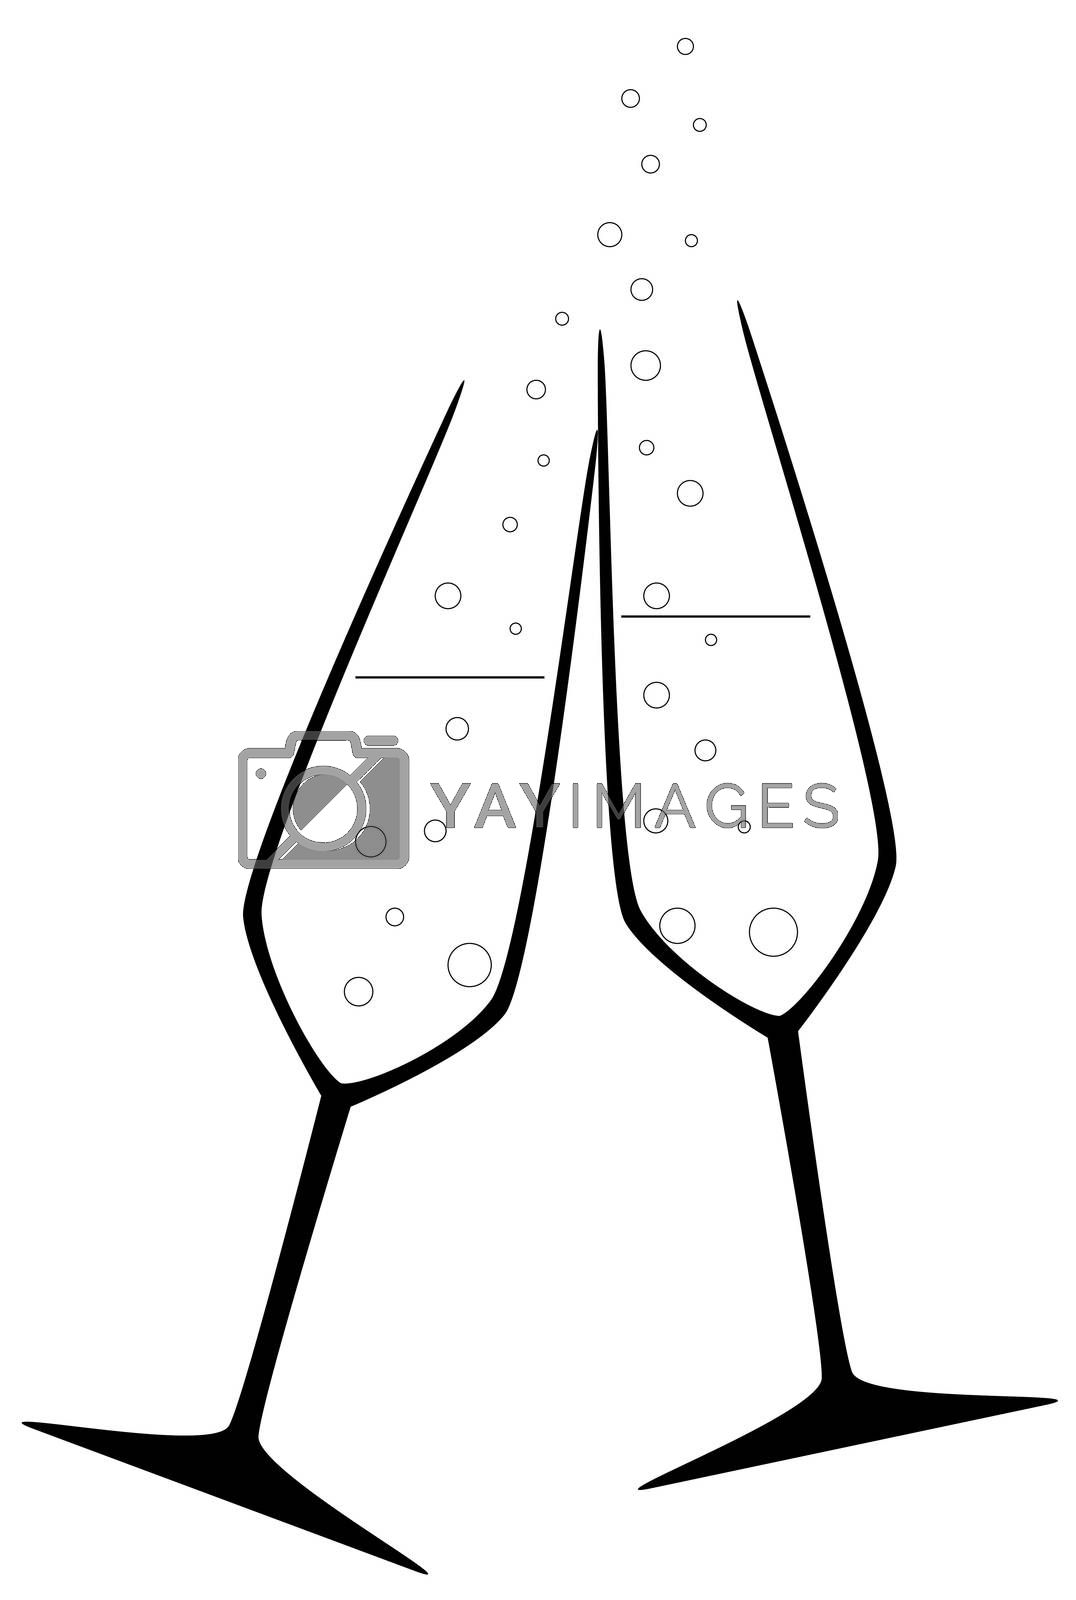 Two charged champagne glass with bubbles isolated on white.